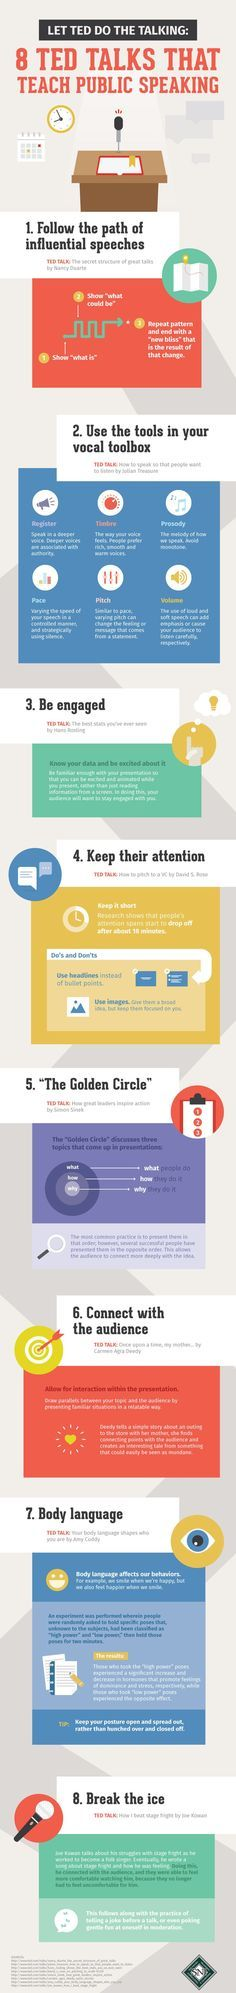 8 Ted Talks That Teach Public Speaking #infographic #PublicSpeaking www.ideatevision.com